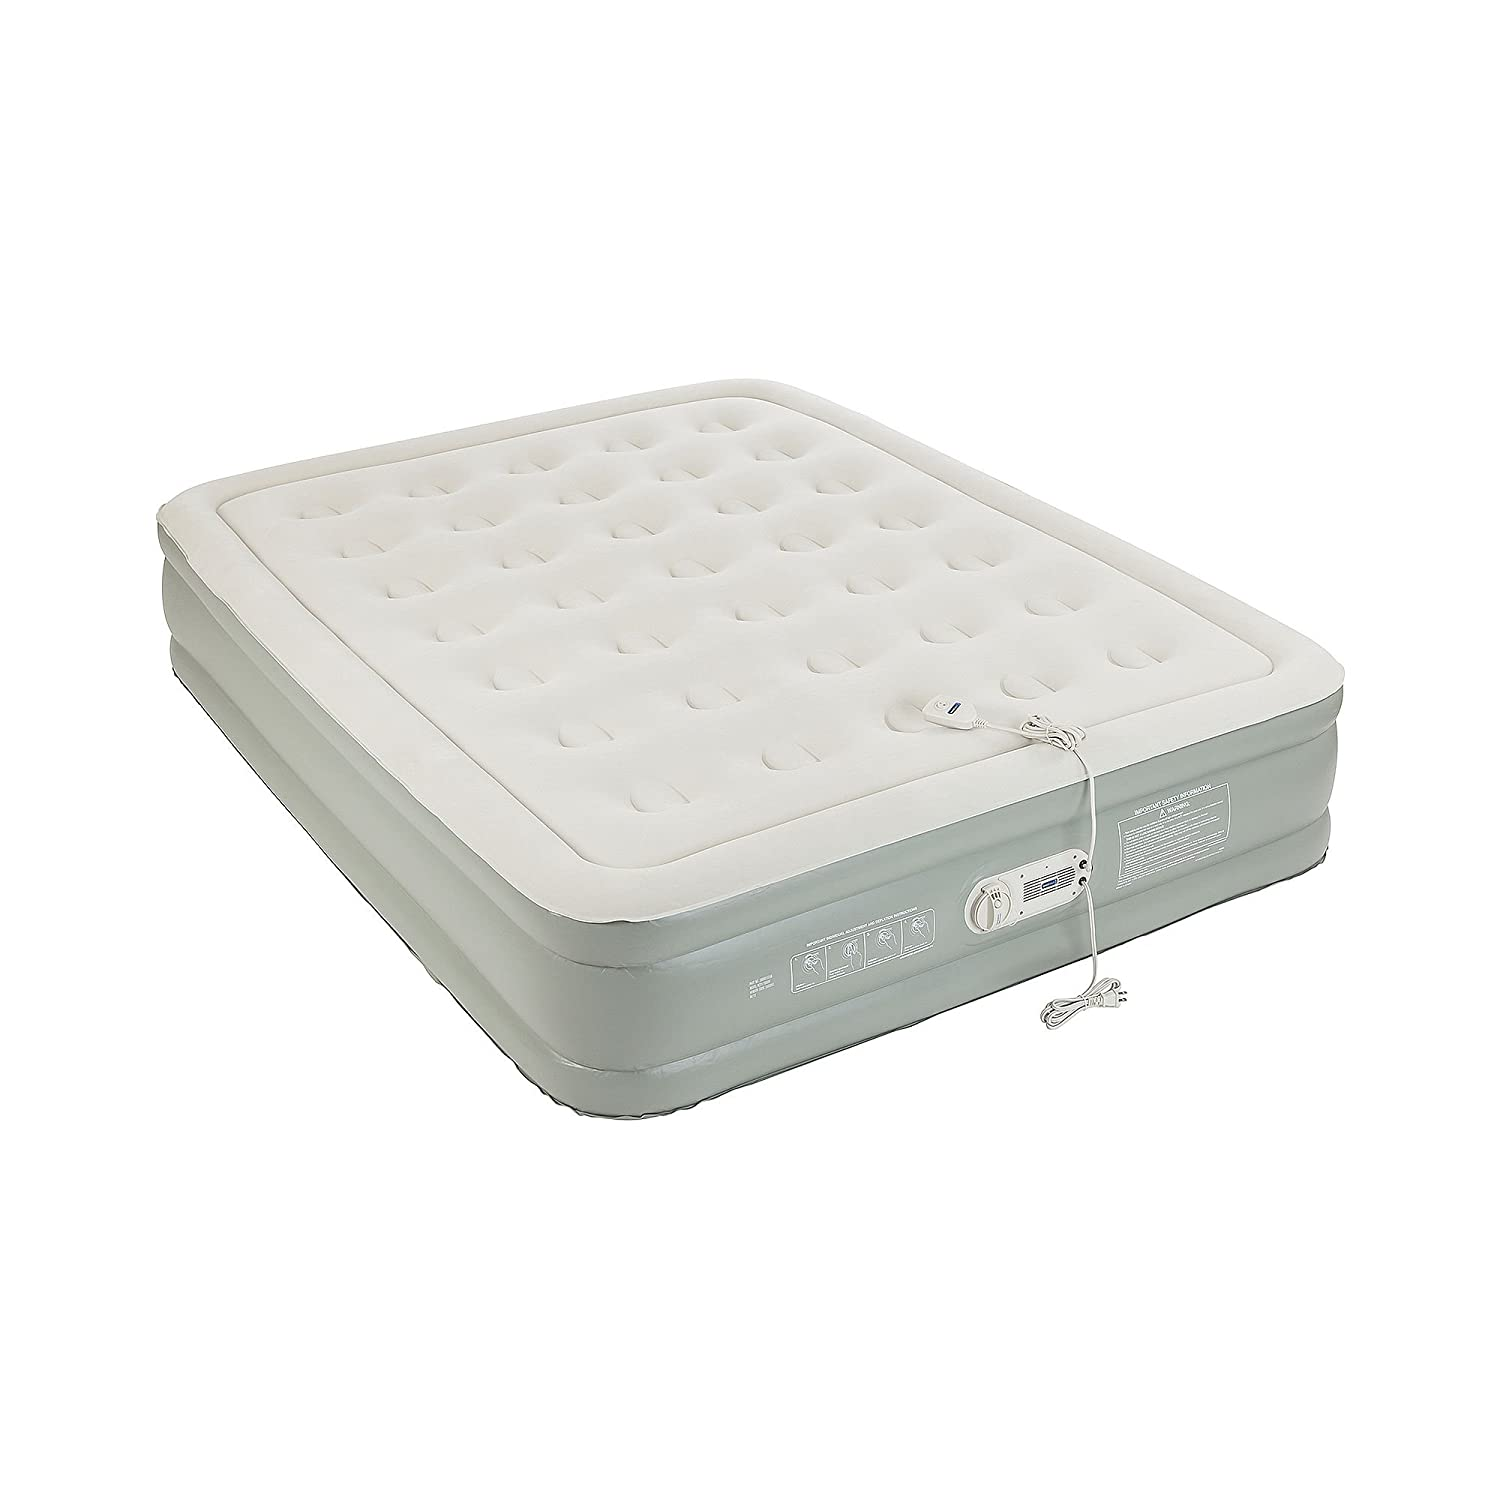 AeroBed Premier Double-High Queen Air Mattress